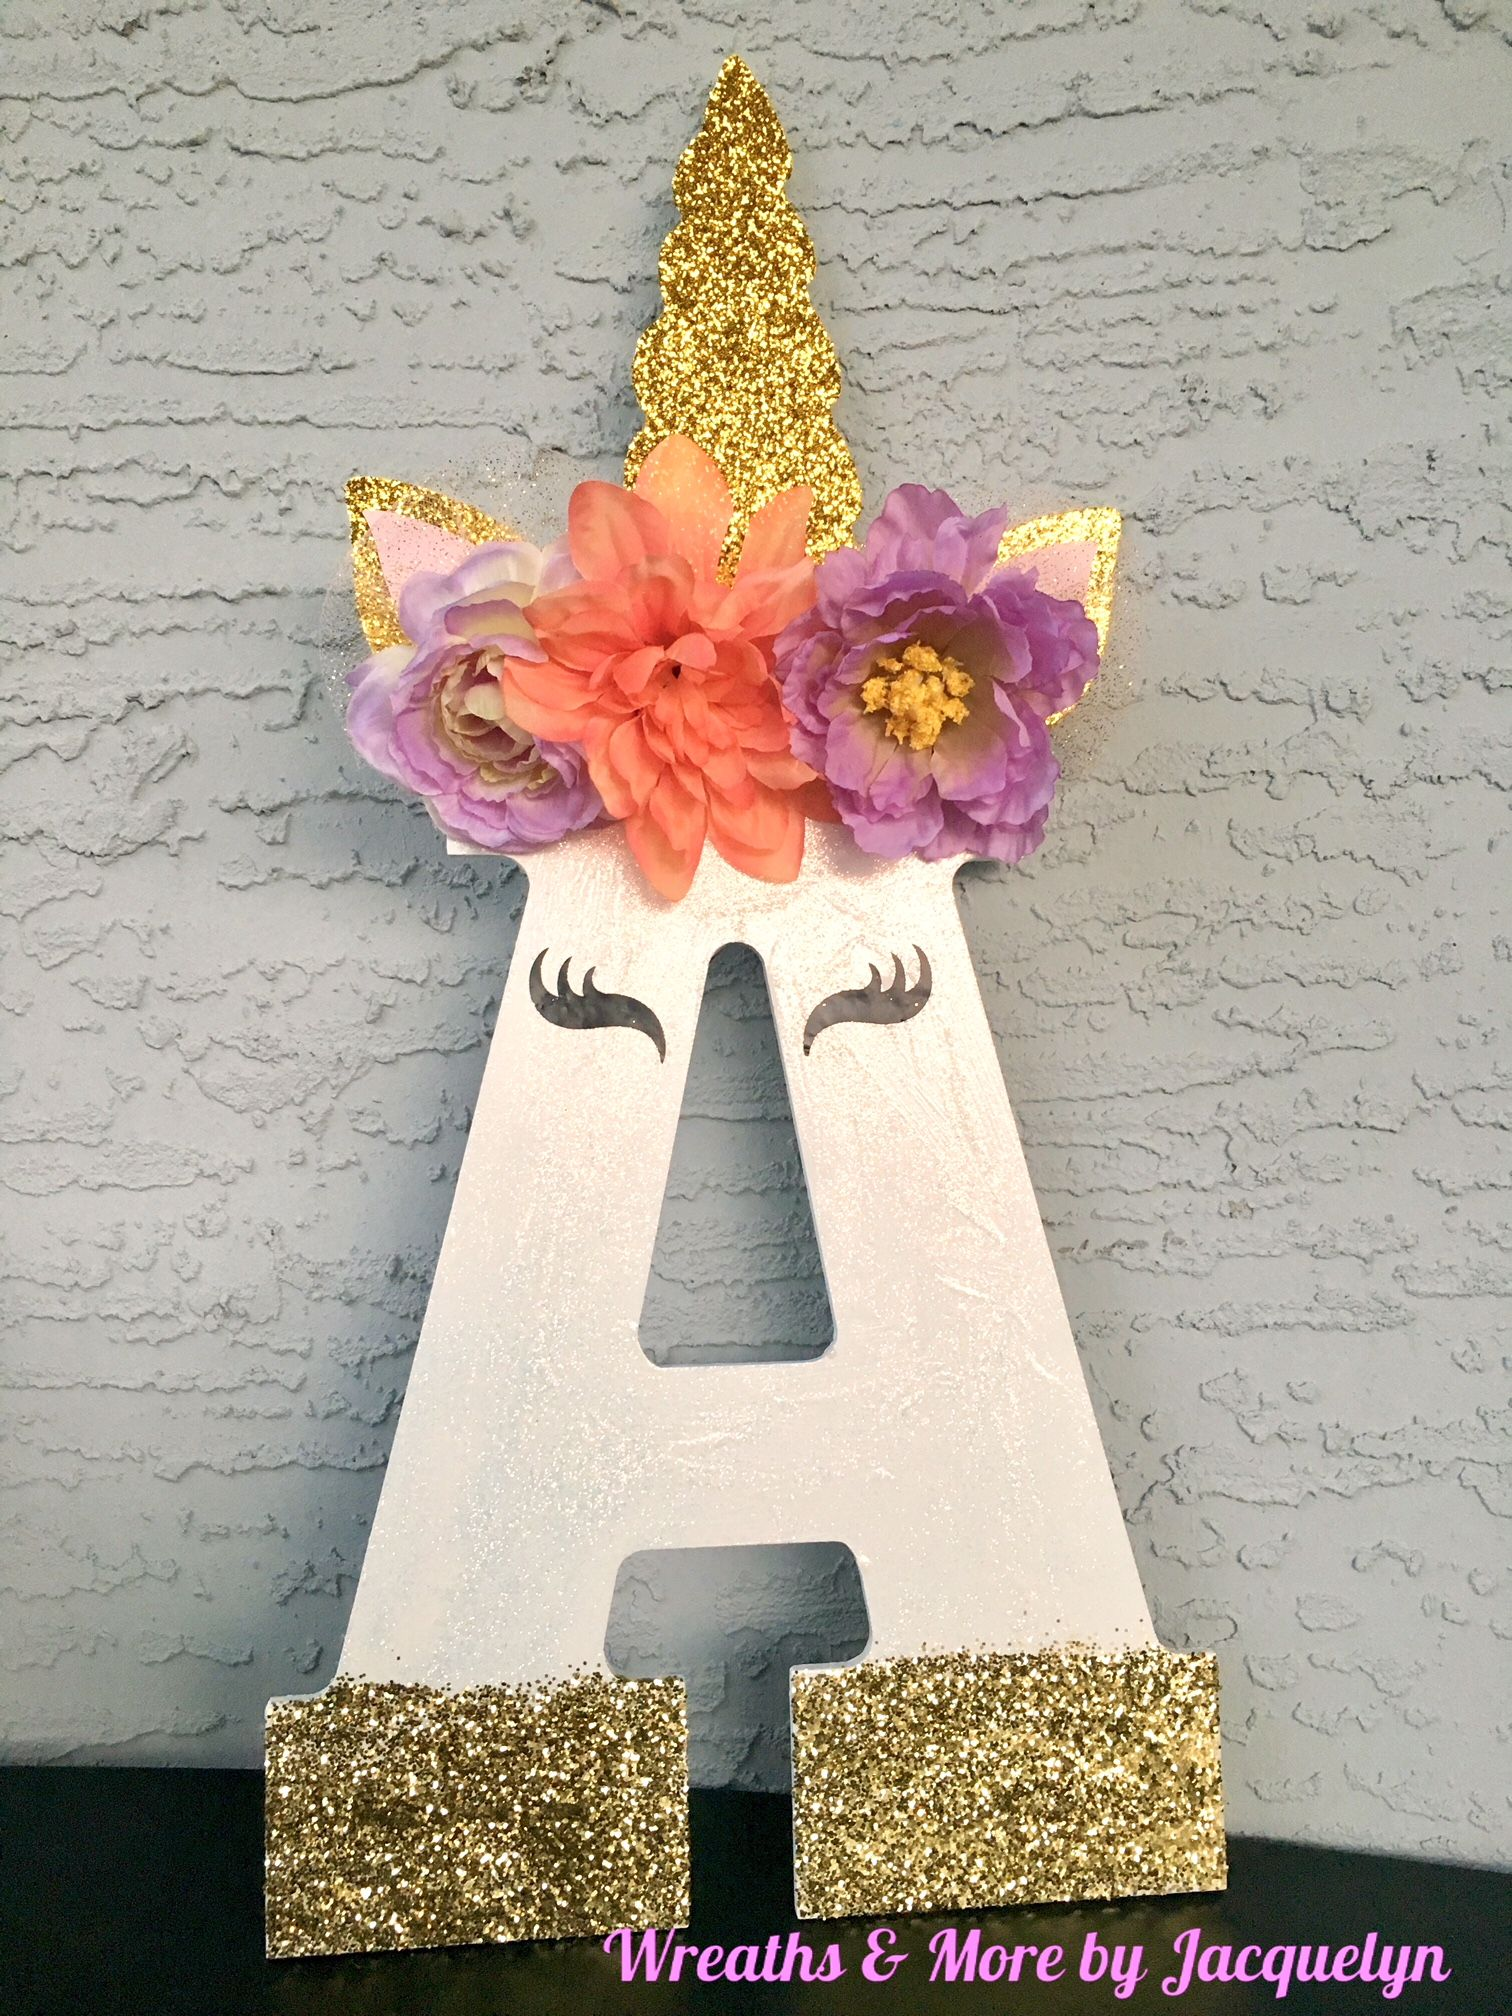 Unicorn Themed Wood Initial Letter, Letter A, Bedroom Decor, Wall Decor, Birthday Party Decor, Gold Pink Lavender Purple Coral, Gold Glitter, Unicorn Decorations, Wall Hanger, Dresser, Kids, Child, Children, Infant, Toddler, Baby, Popular, Unique, Wreaths & More by Jacquelyn